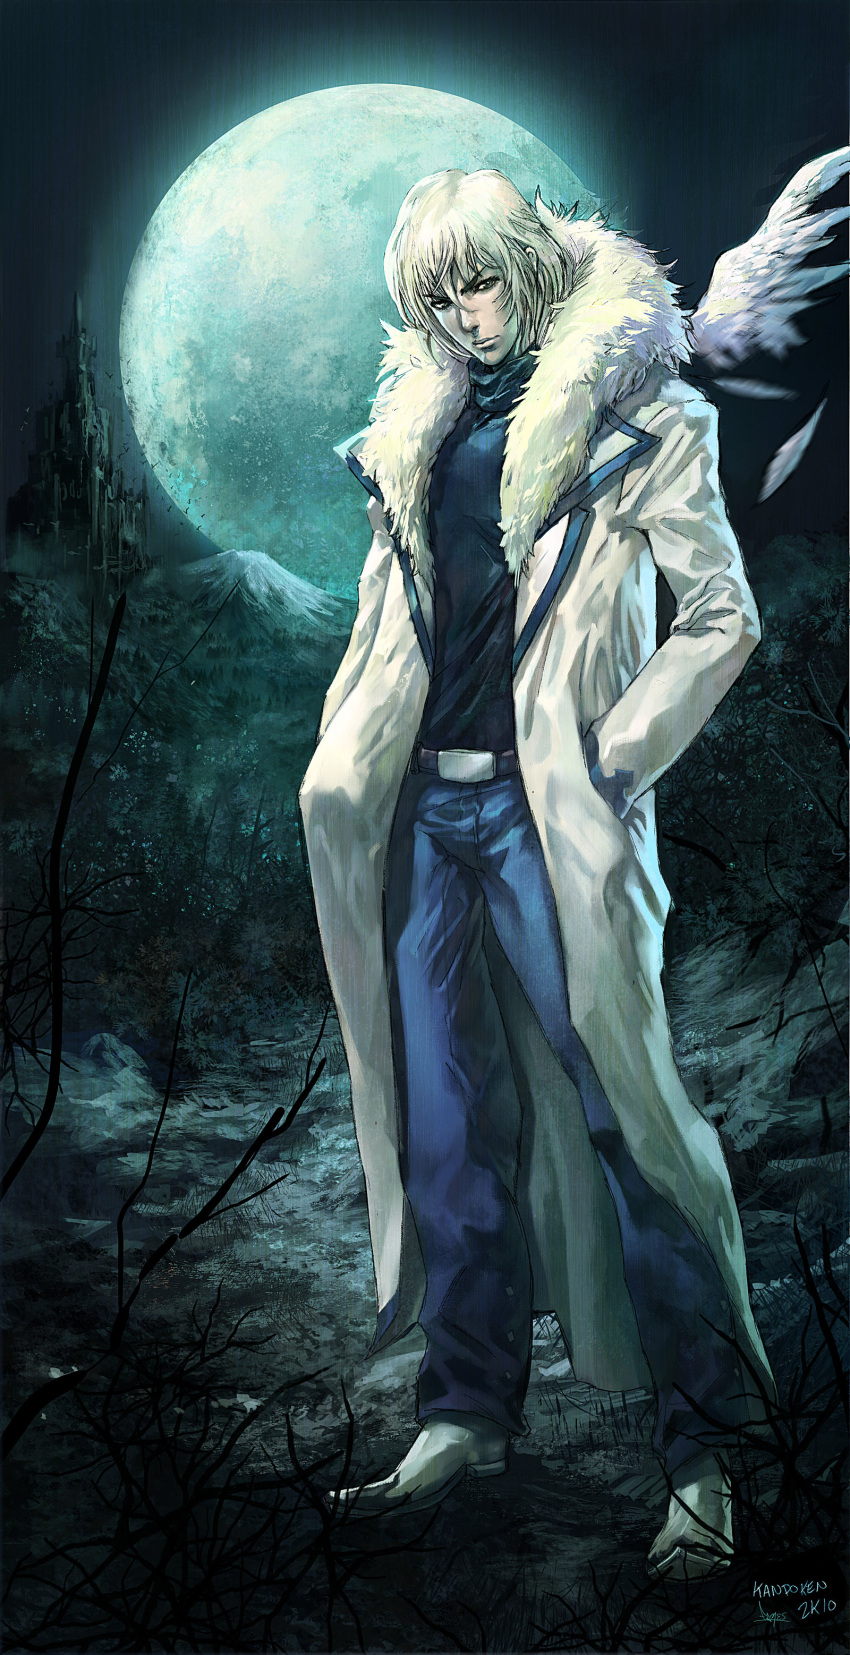 castlevania castlevania:_aria_of_sorrow coat full_moon fur_coat hands_in_pockets highres moon mountain soma_cruz steven_mack trench_coat turtleneck white_hair